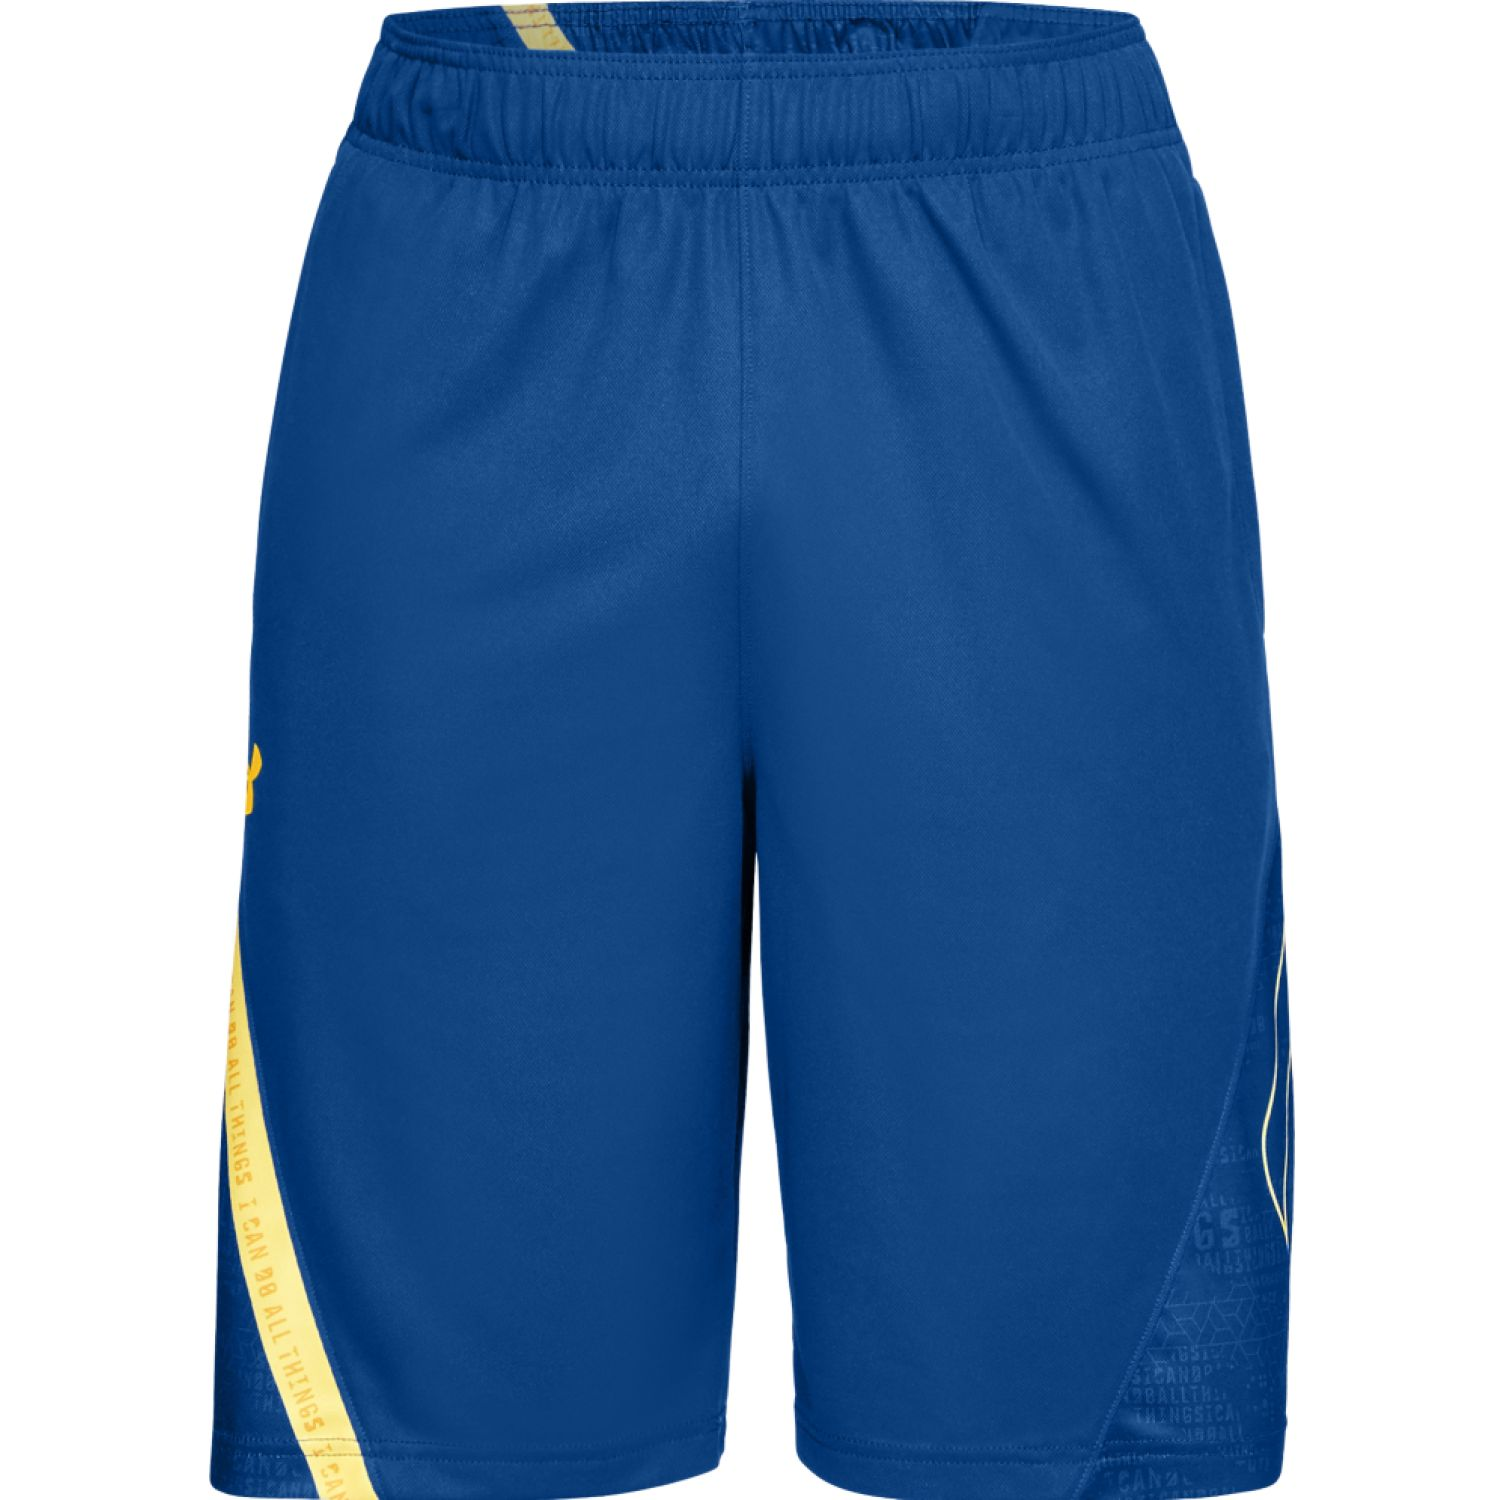 Under Armour Ua Curry 11in Short-Blu Azul / amarillo Camisetas y polos deportivos